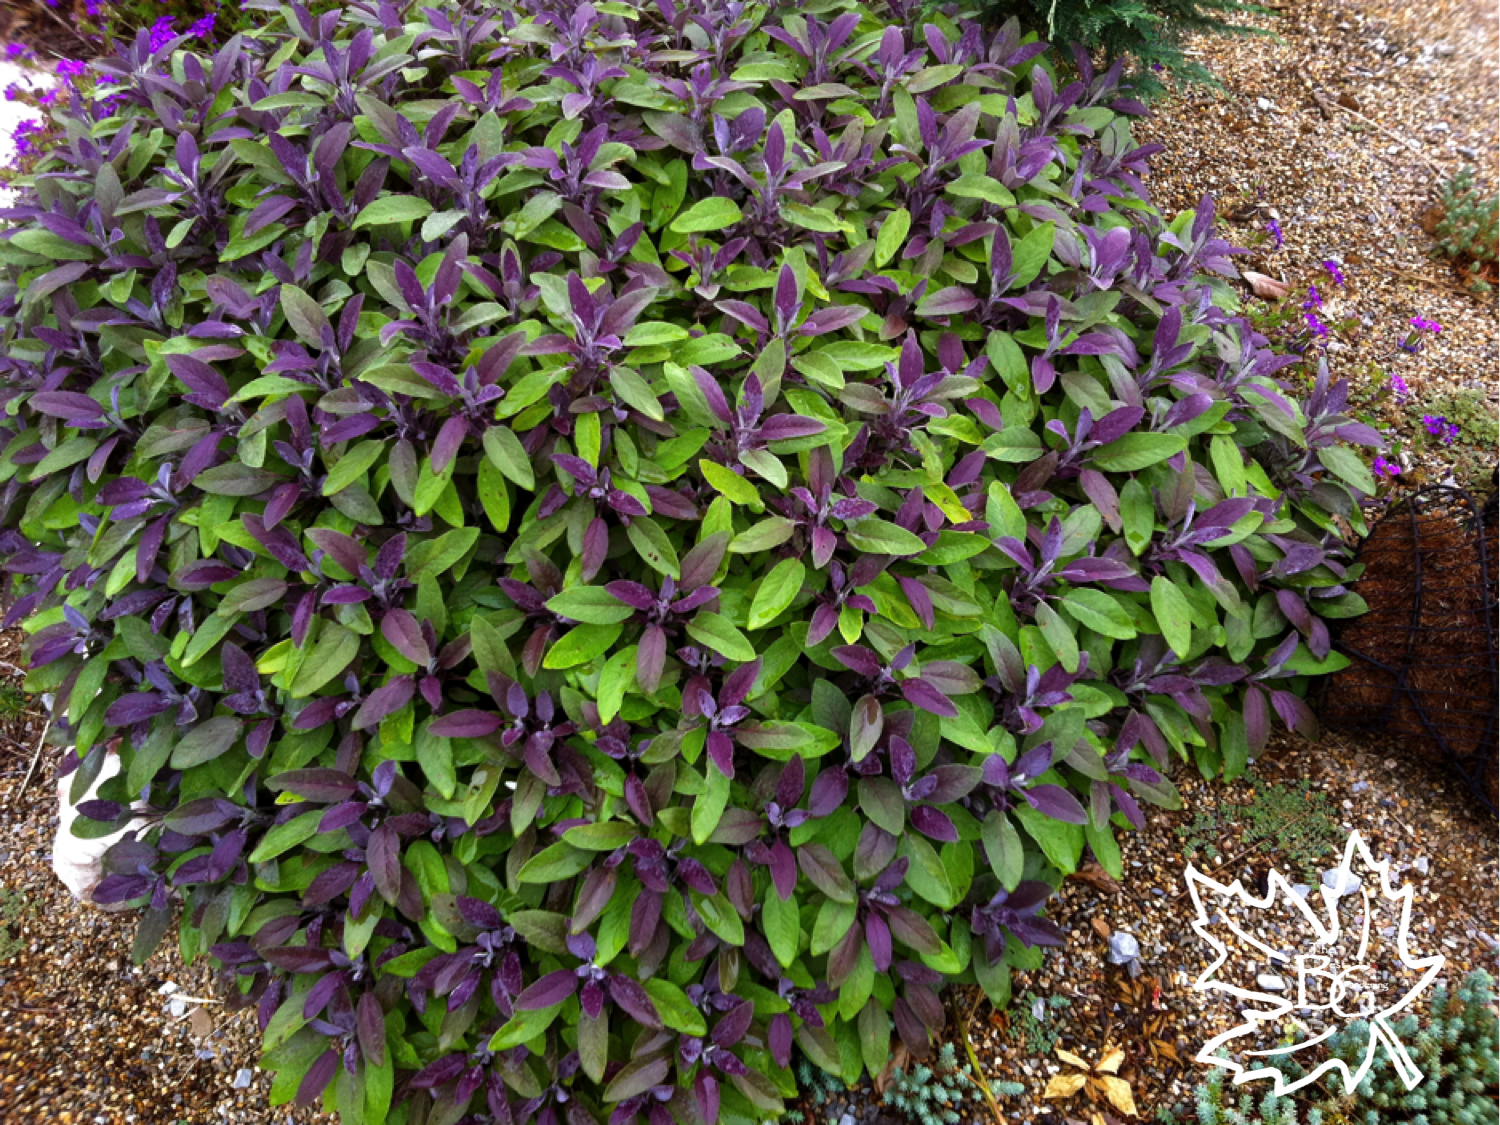 Purple Leaf Sage Is An Incredible Looking Shrub But Hardy Only To Zone 7 G